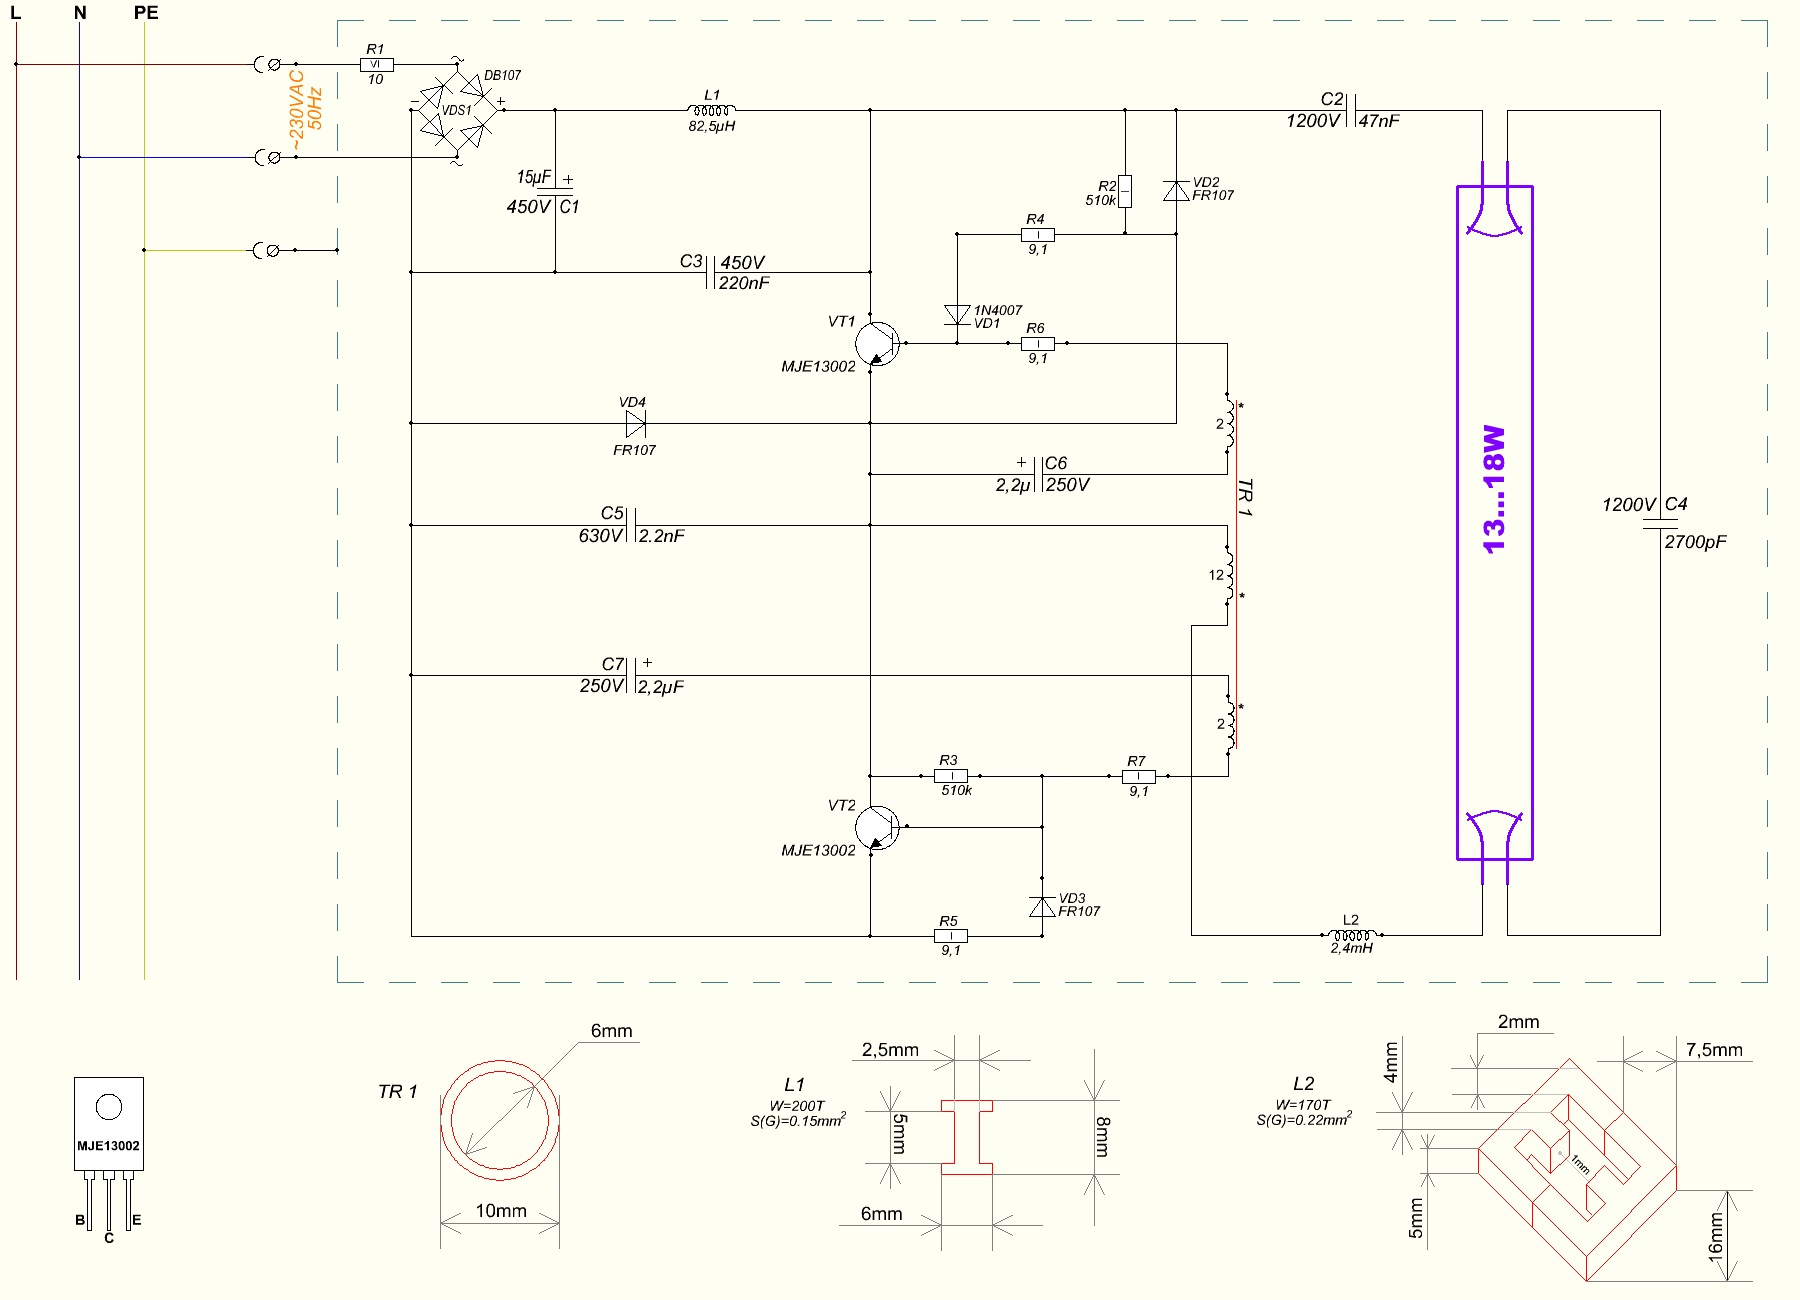 hight resolution of file wiring diagram of electronic ballast jpg wikimedia commons emergency lighting ballast wiring diagram electronic ballast wiring diagram